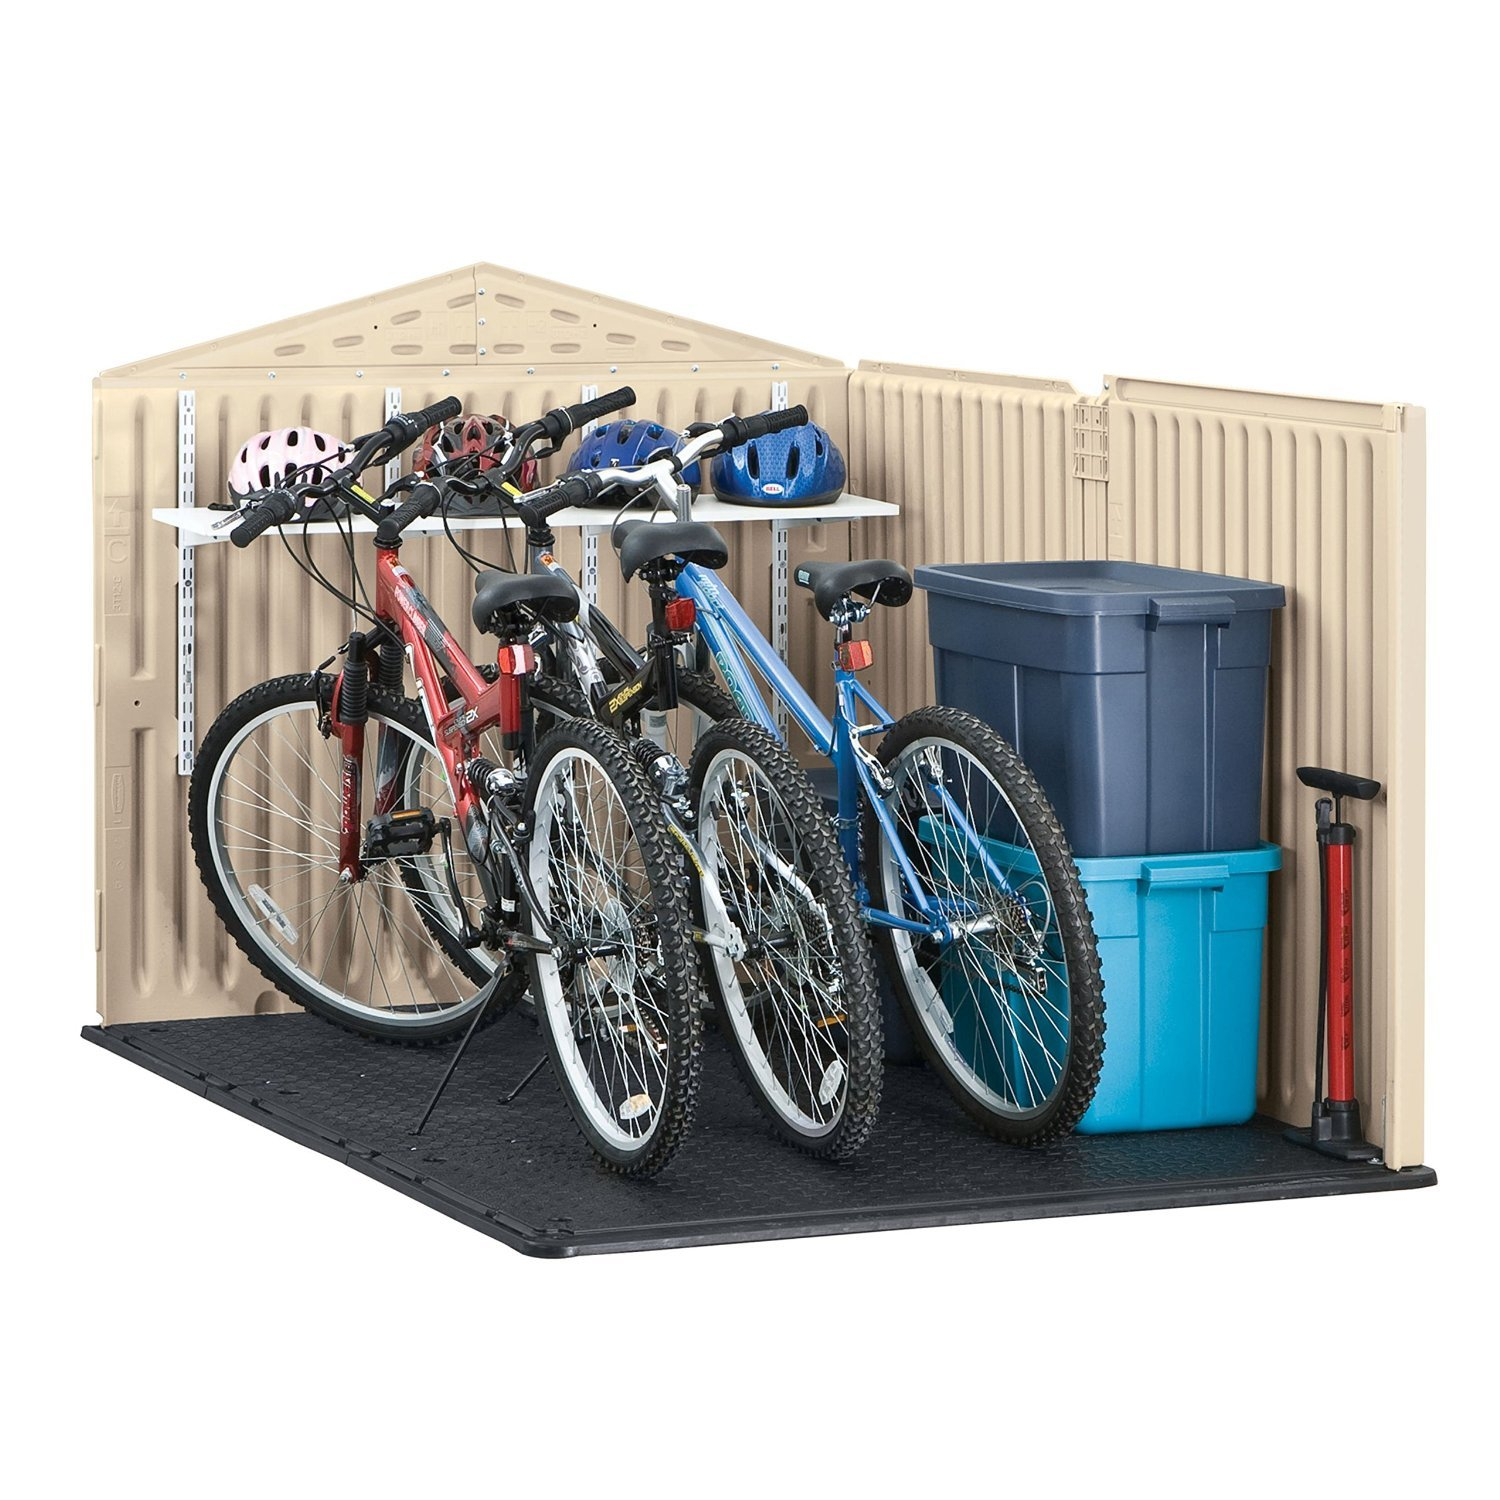 Ordinaire If Someone Wanted To Buy The Best Bike Storage Shed Out There, I Would  Recommend That They Buy The Rubbermaid Outdoor Slide Lid Storage Shed.